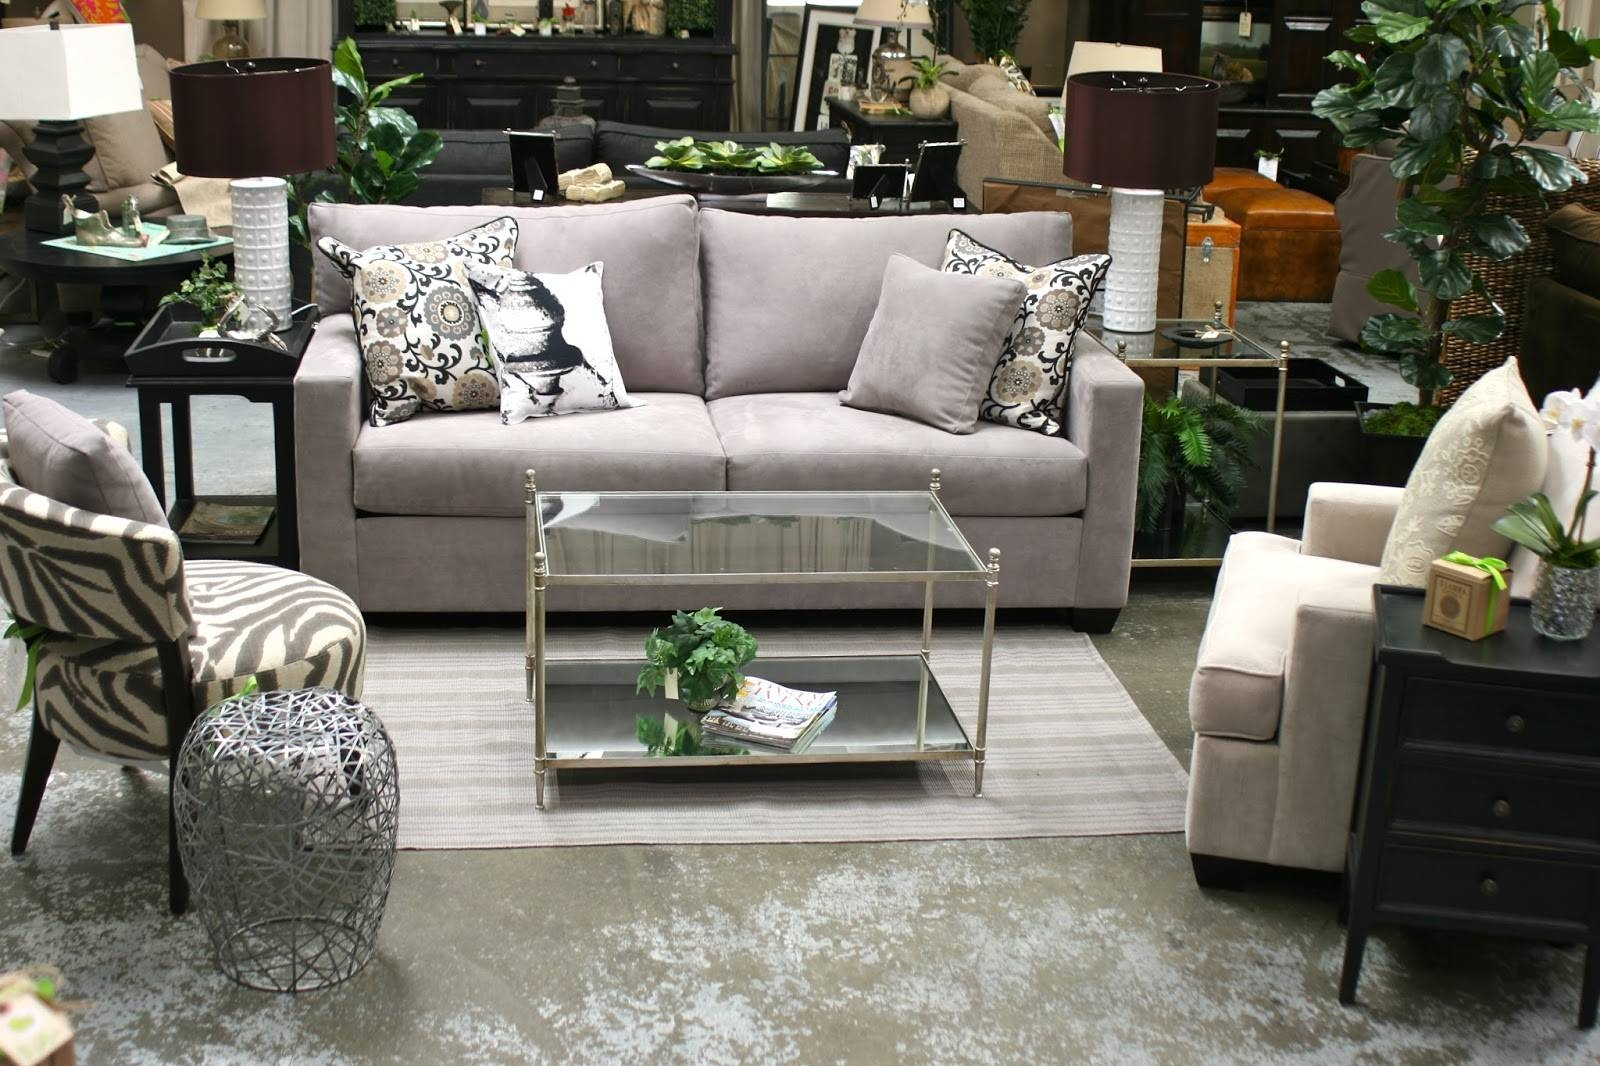 Furniture: Appealing Mirrored Coffee Table For Living Room inside Small Mirrored Coffee Tables (Image 7 of 30)